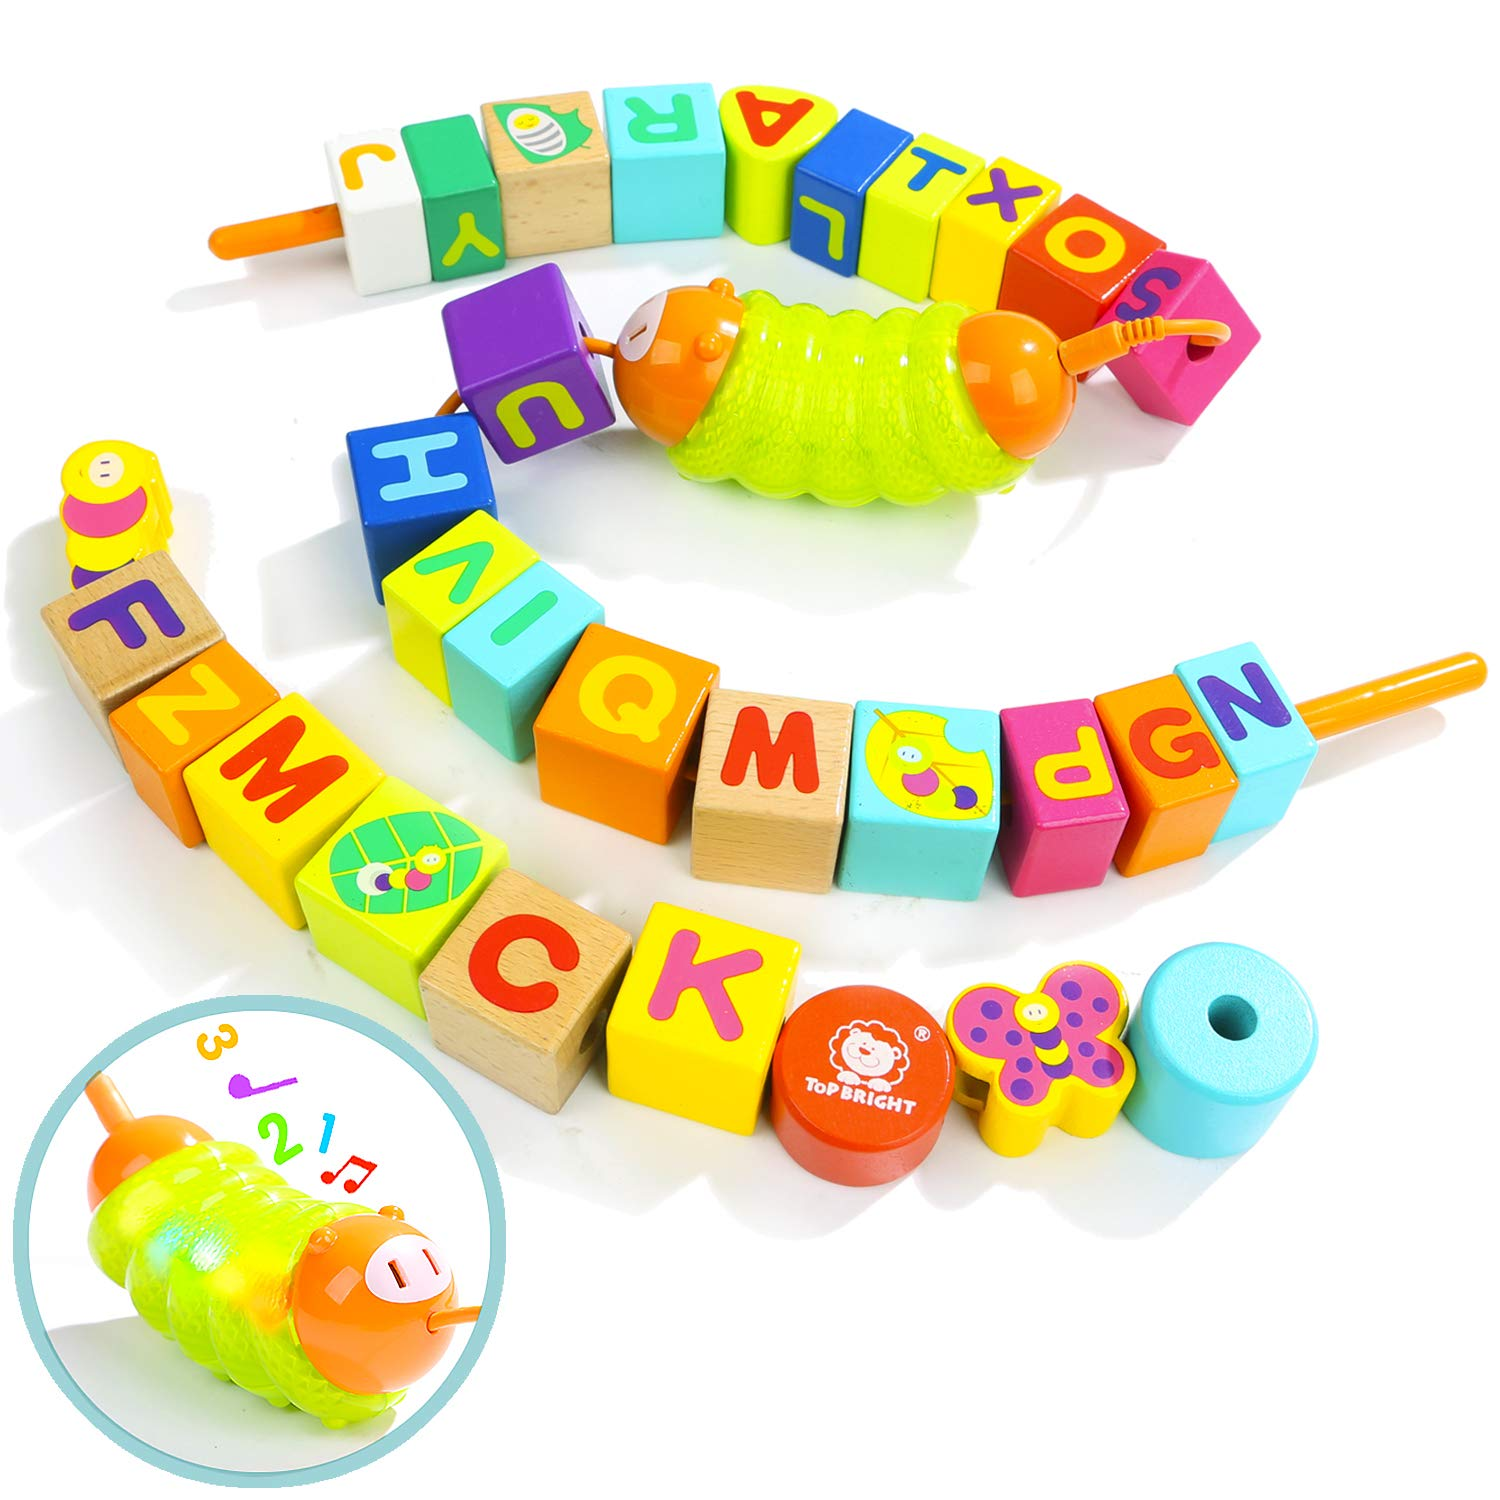 TOP BRIGHT Wooden Lacing Beads for Toddlers Stringing Beads Toy 2 Years Olds Gifts